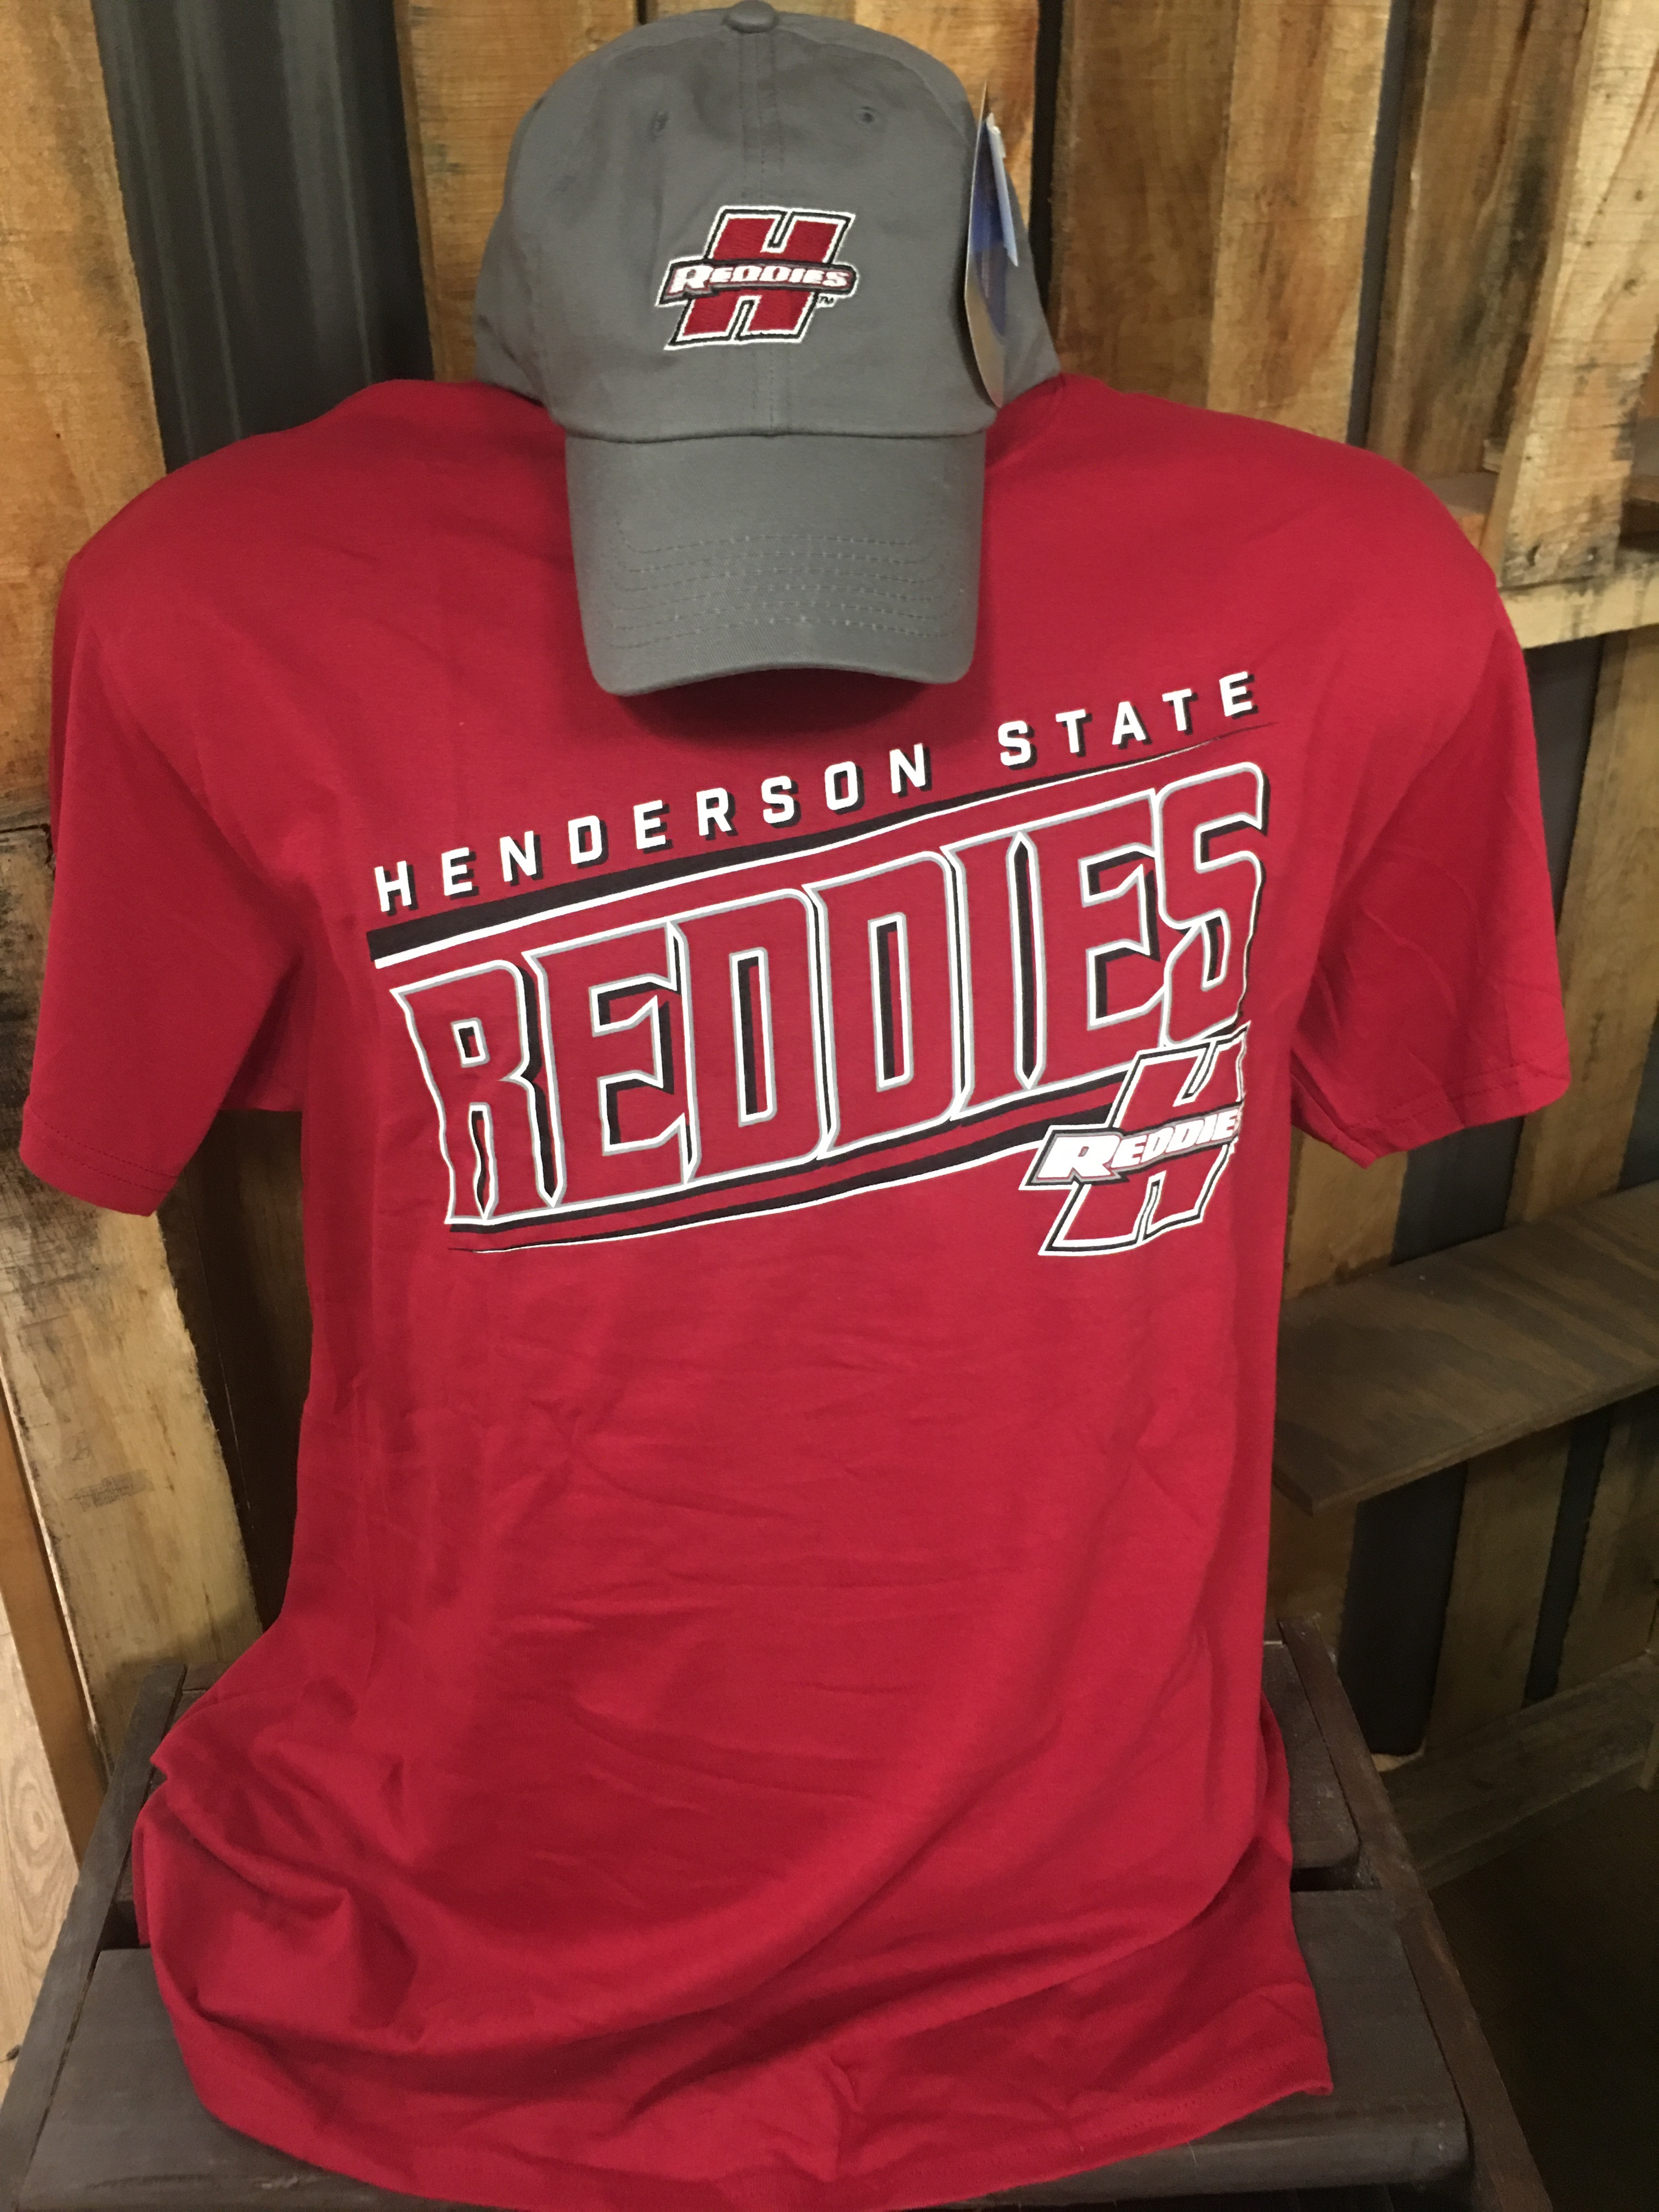 Henderson Reddies Short Sleeve T-Shirt / Hat Combo